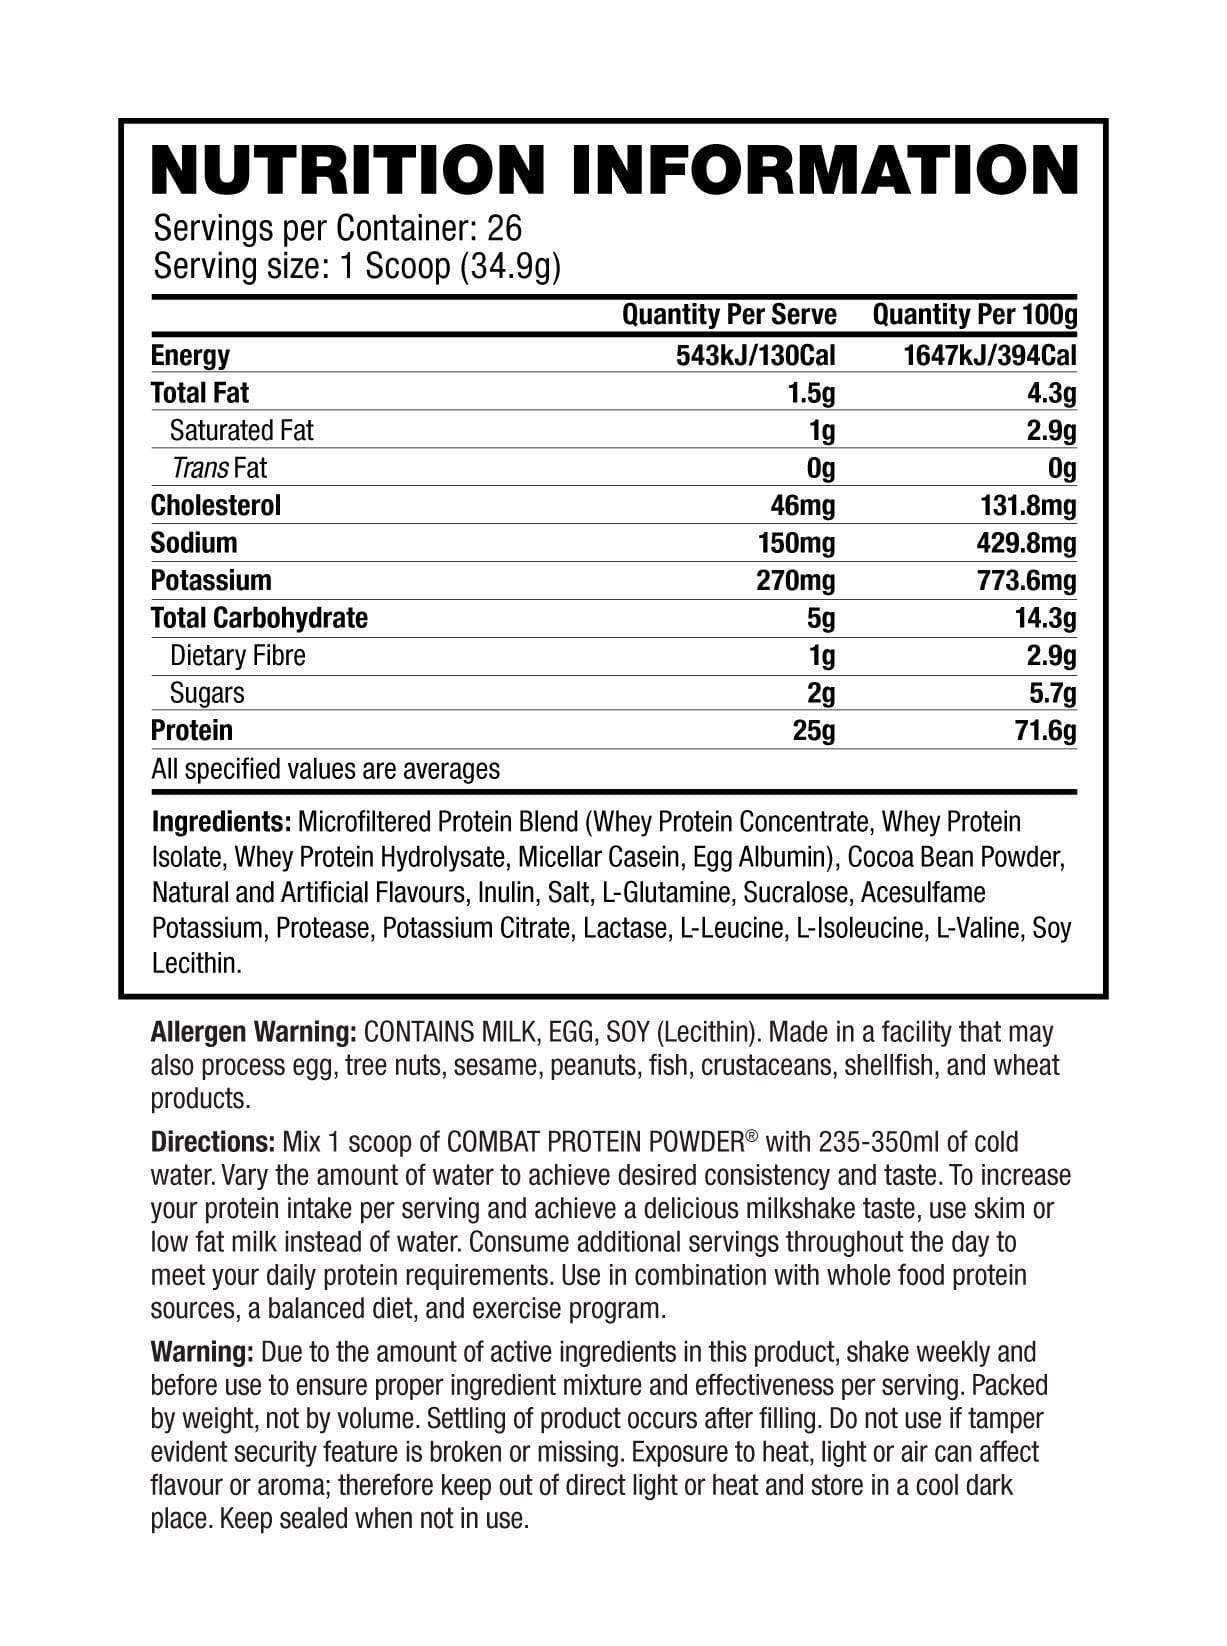 Nutrition Facts For MusclePharm Combat Protein 1.8kg